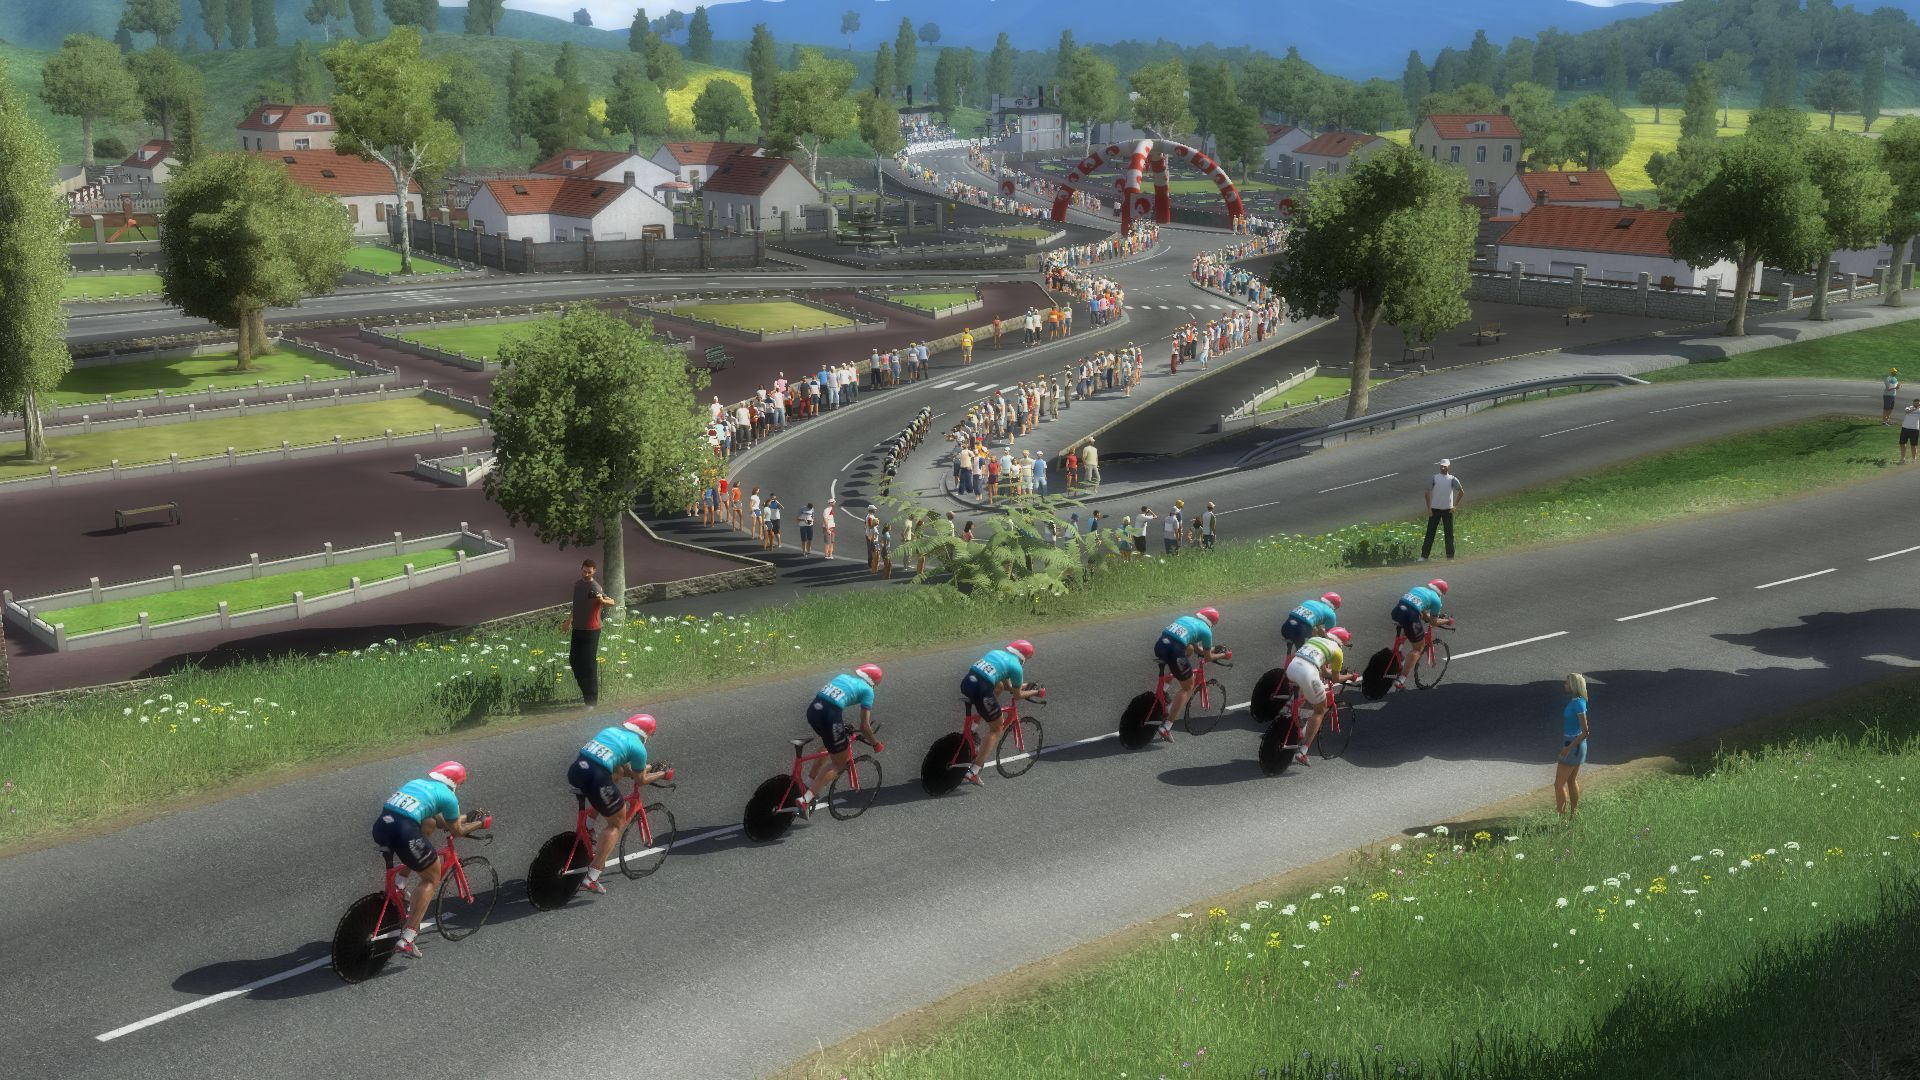 pcmdaily.com/images/mg/2019/Races/HC/Slovenie/mg19_slo_s01_30.jpg